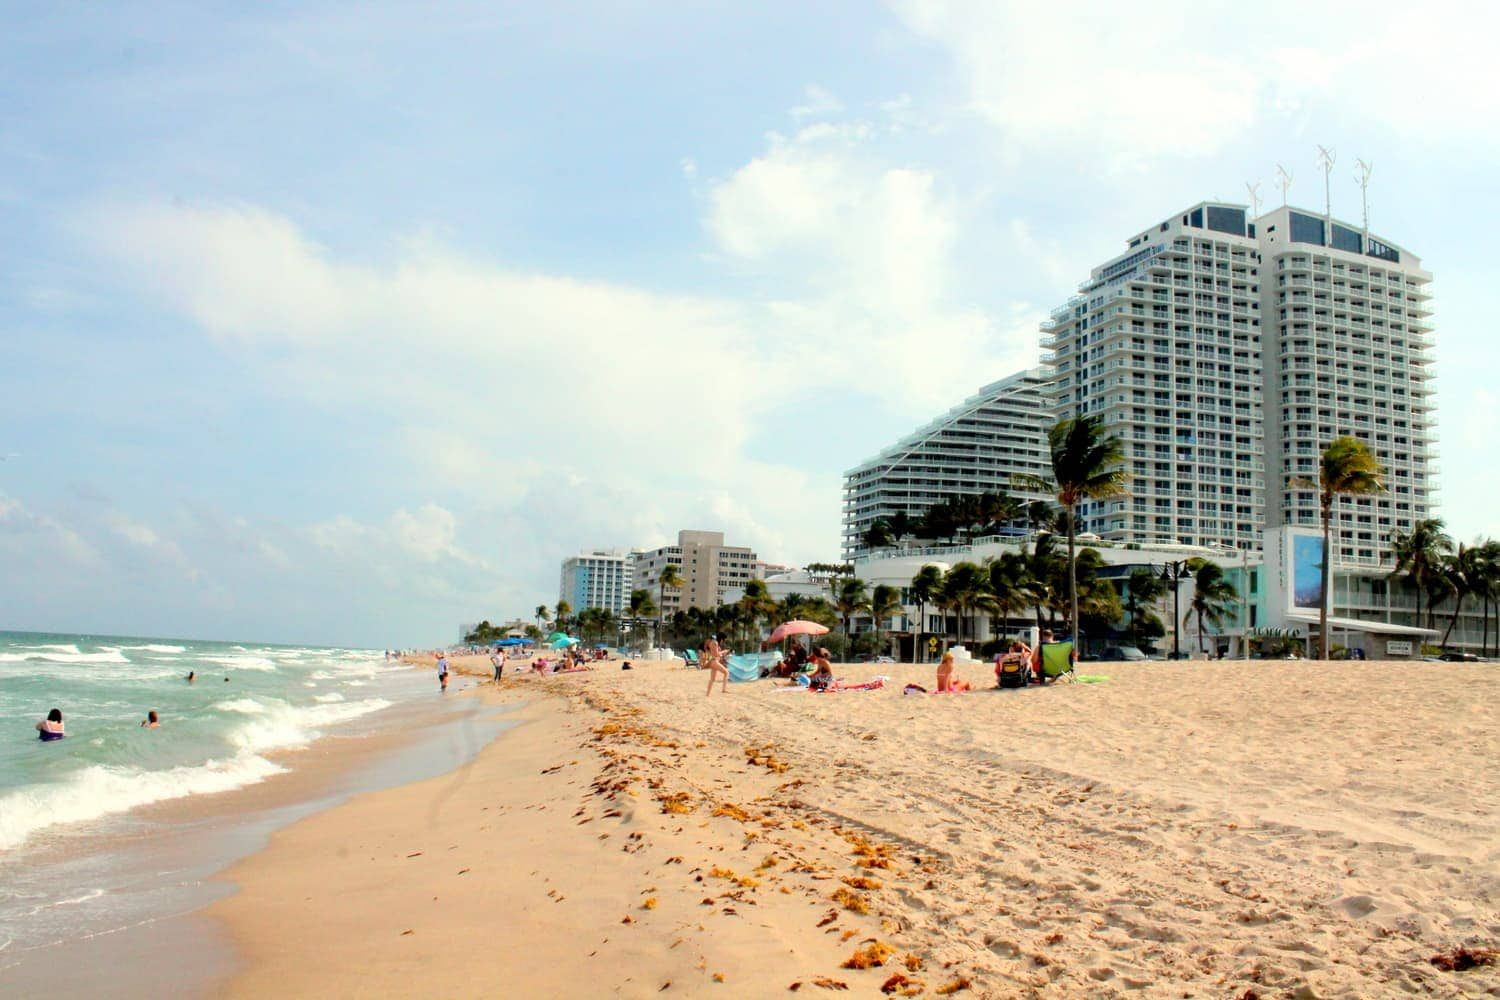 7 Things to Do in Fort Lauderdale (That Aren't Tanning)